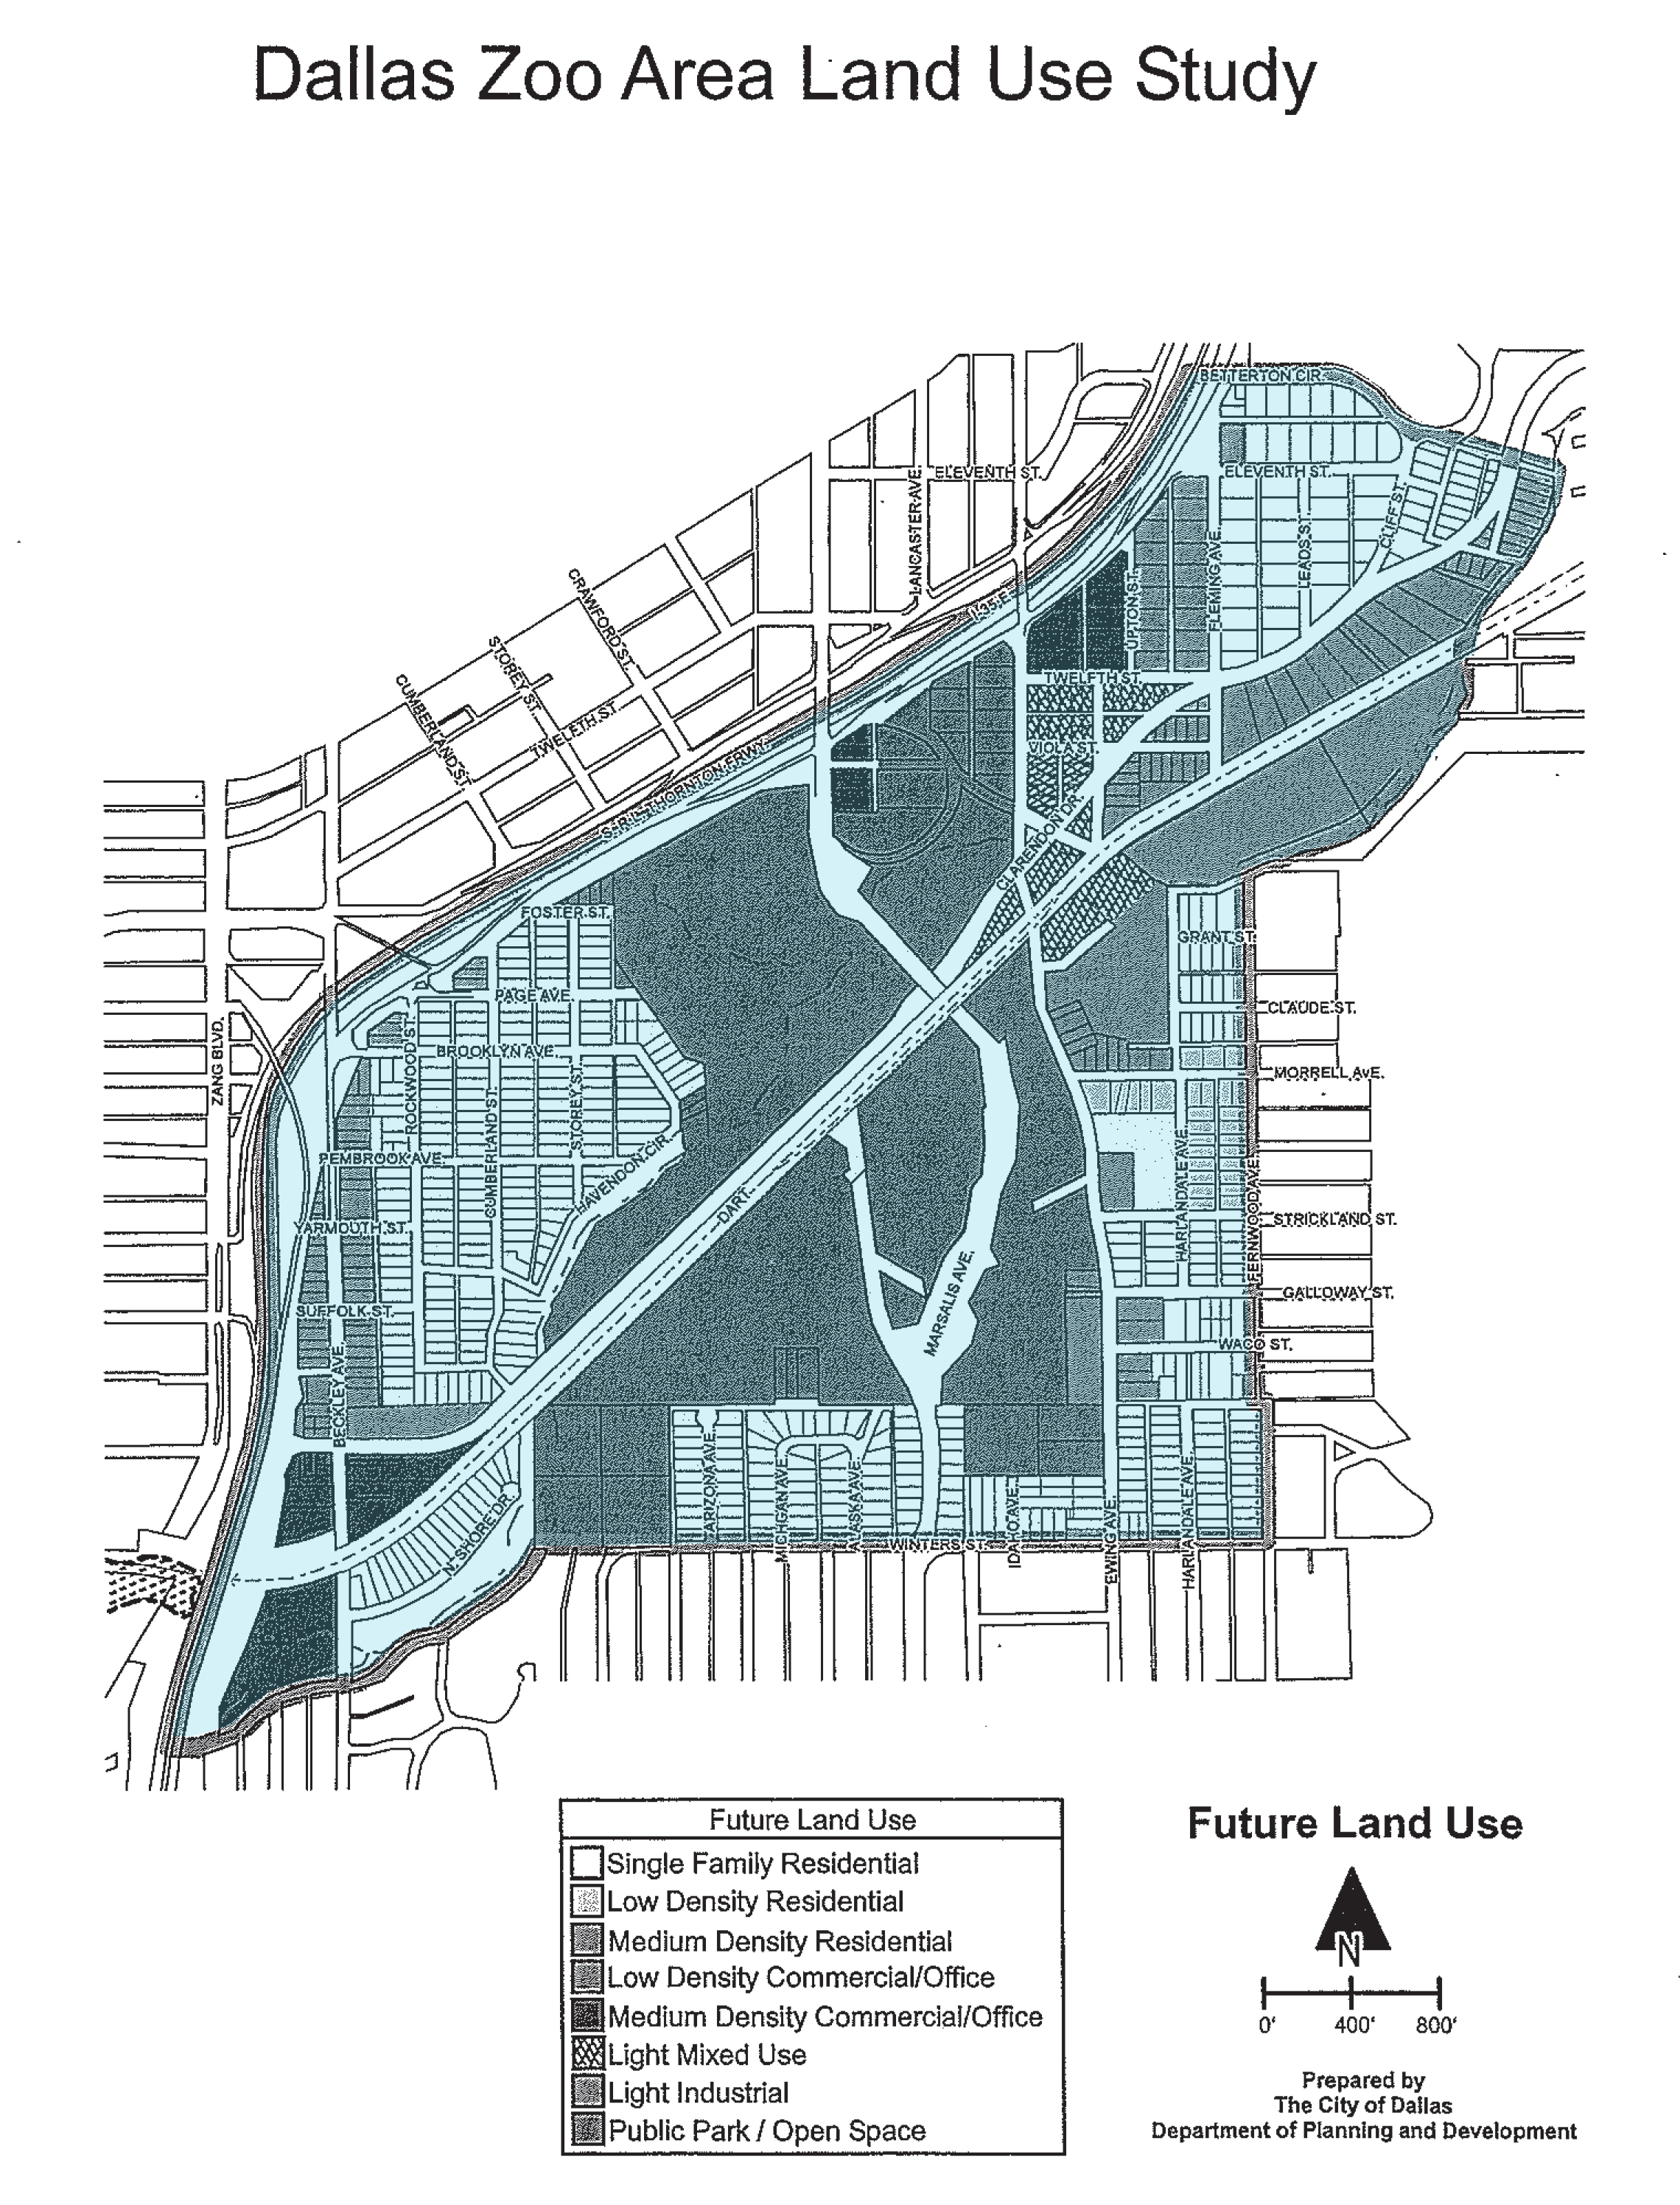 Dallas Zoo Area Land Use Study Landing Page on